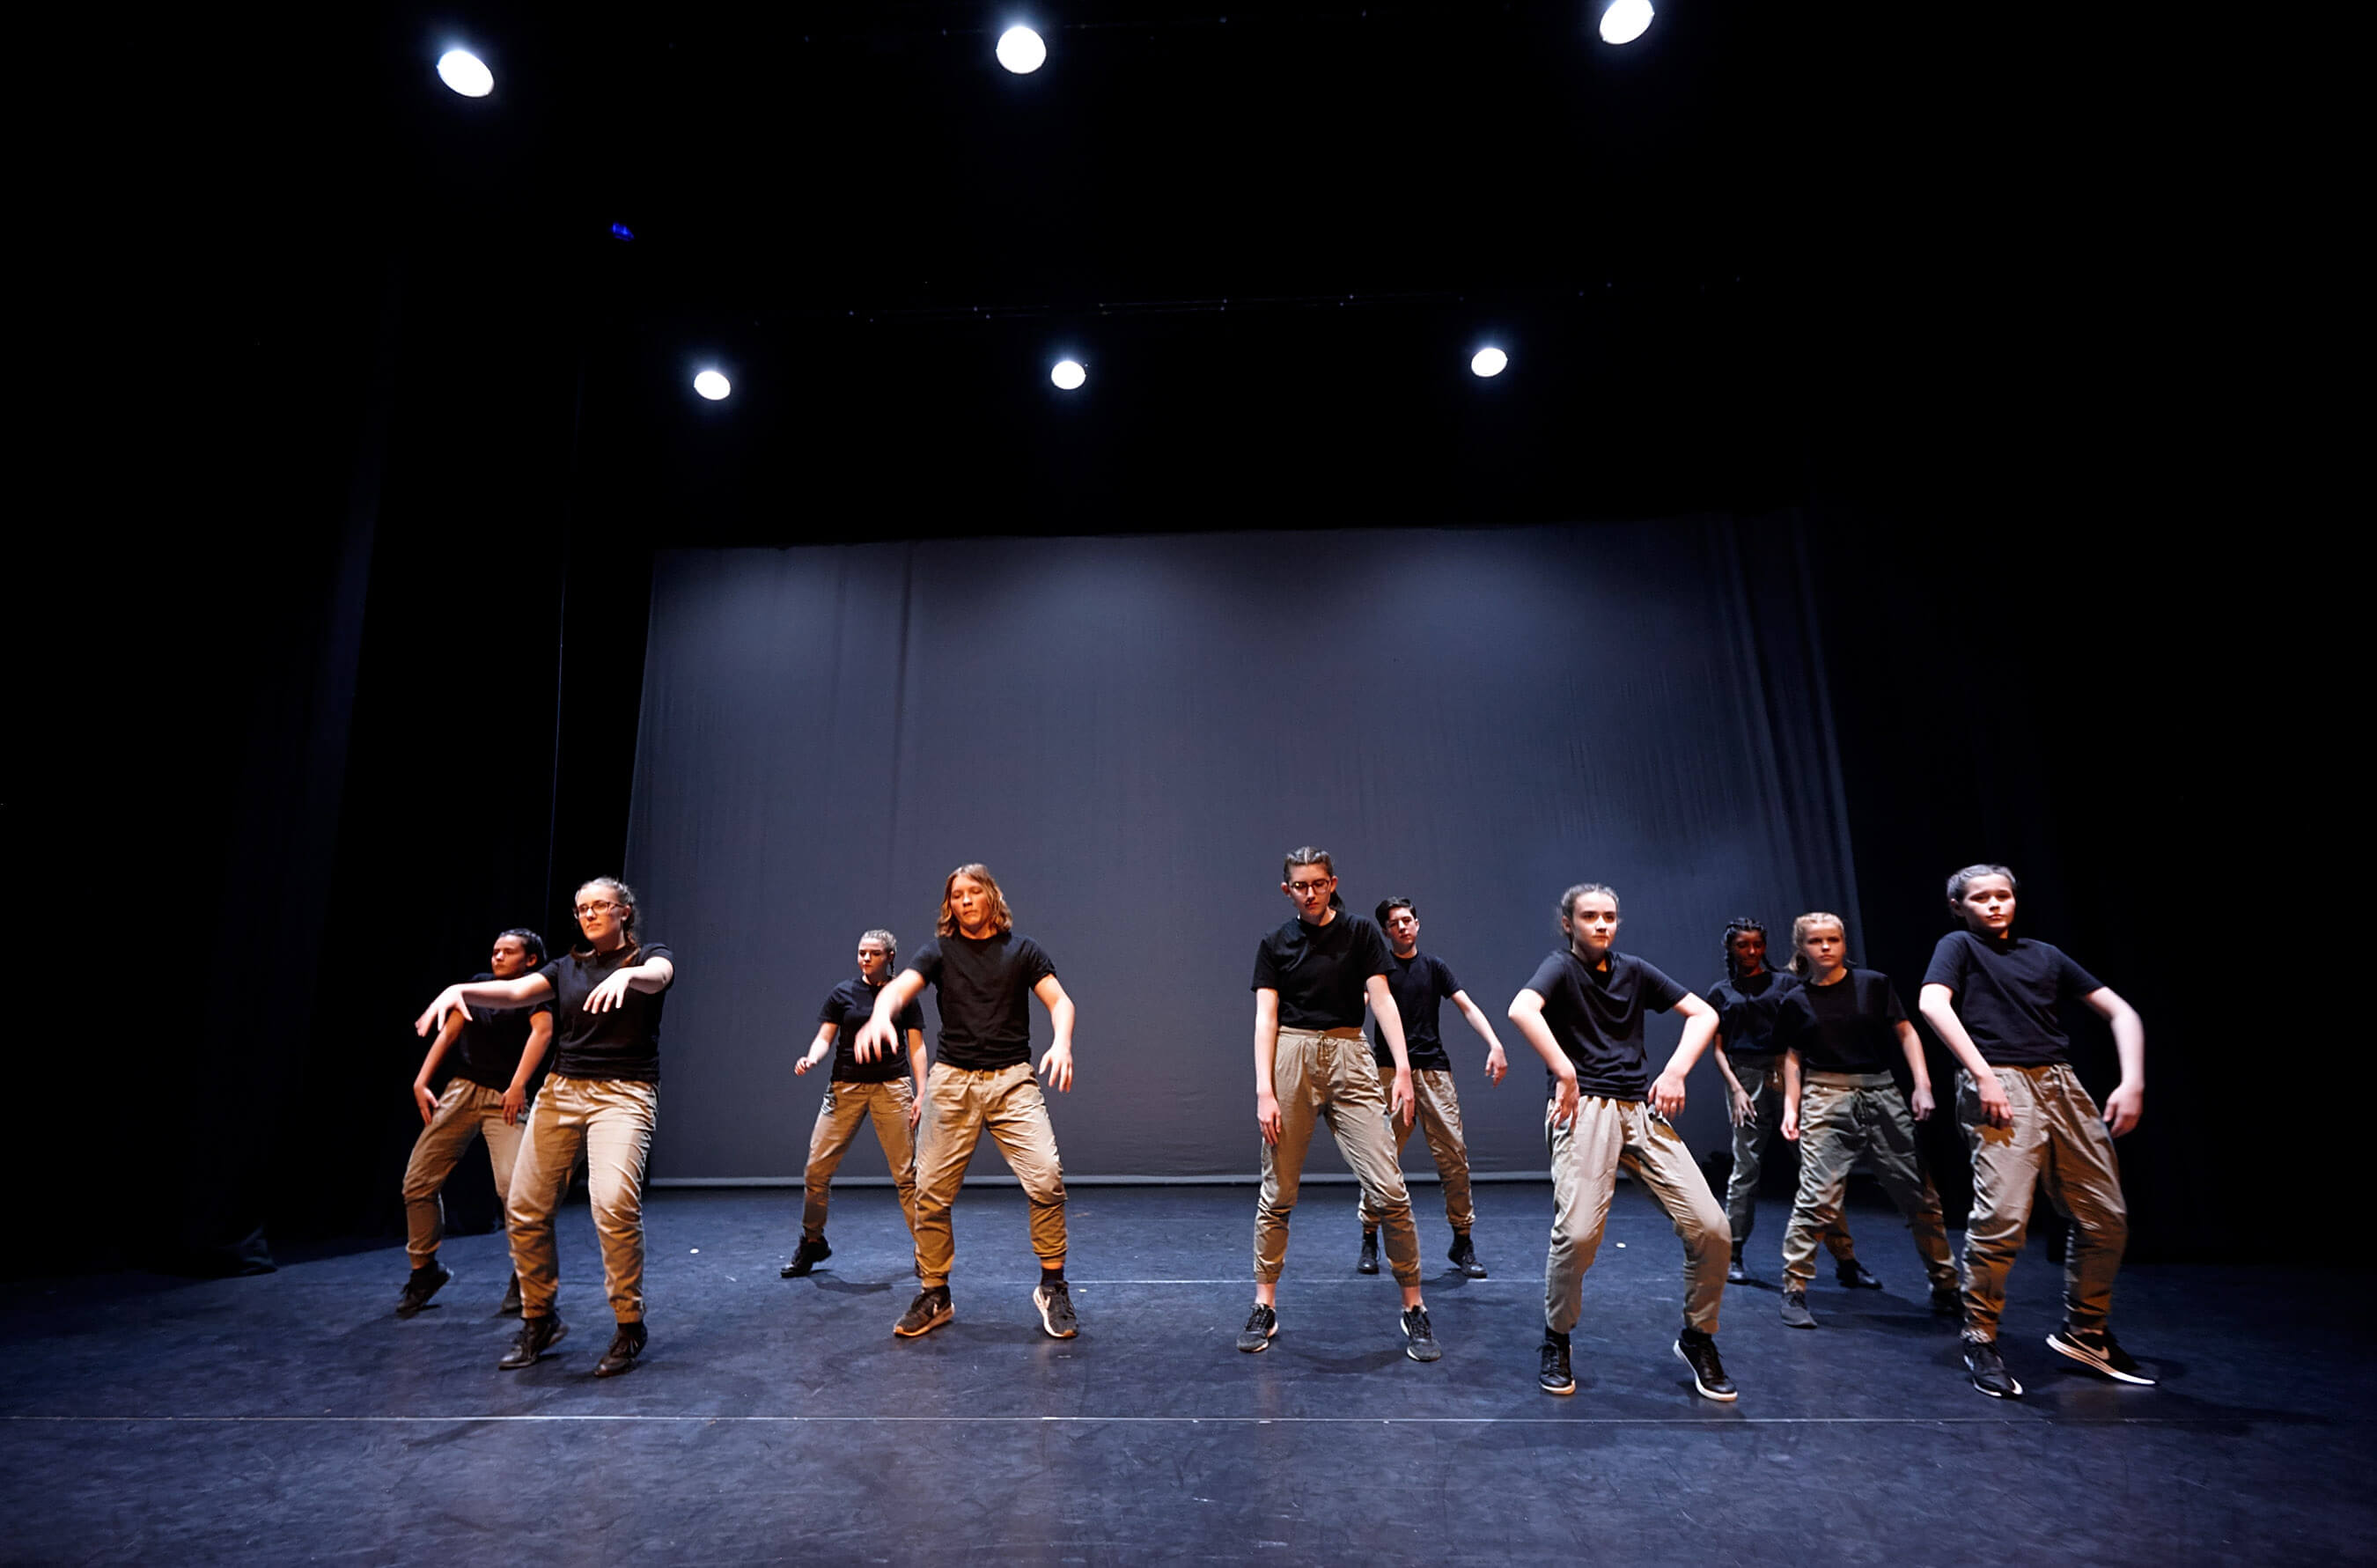 Young teens performing Hip Hop Dance onstage